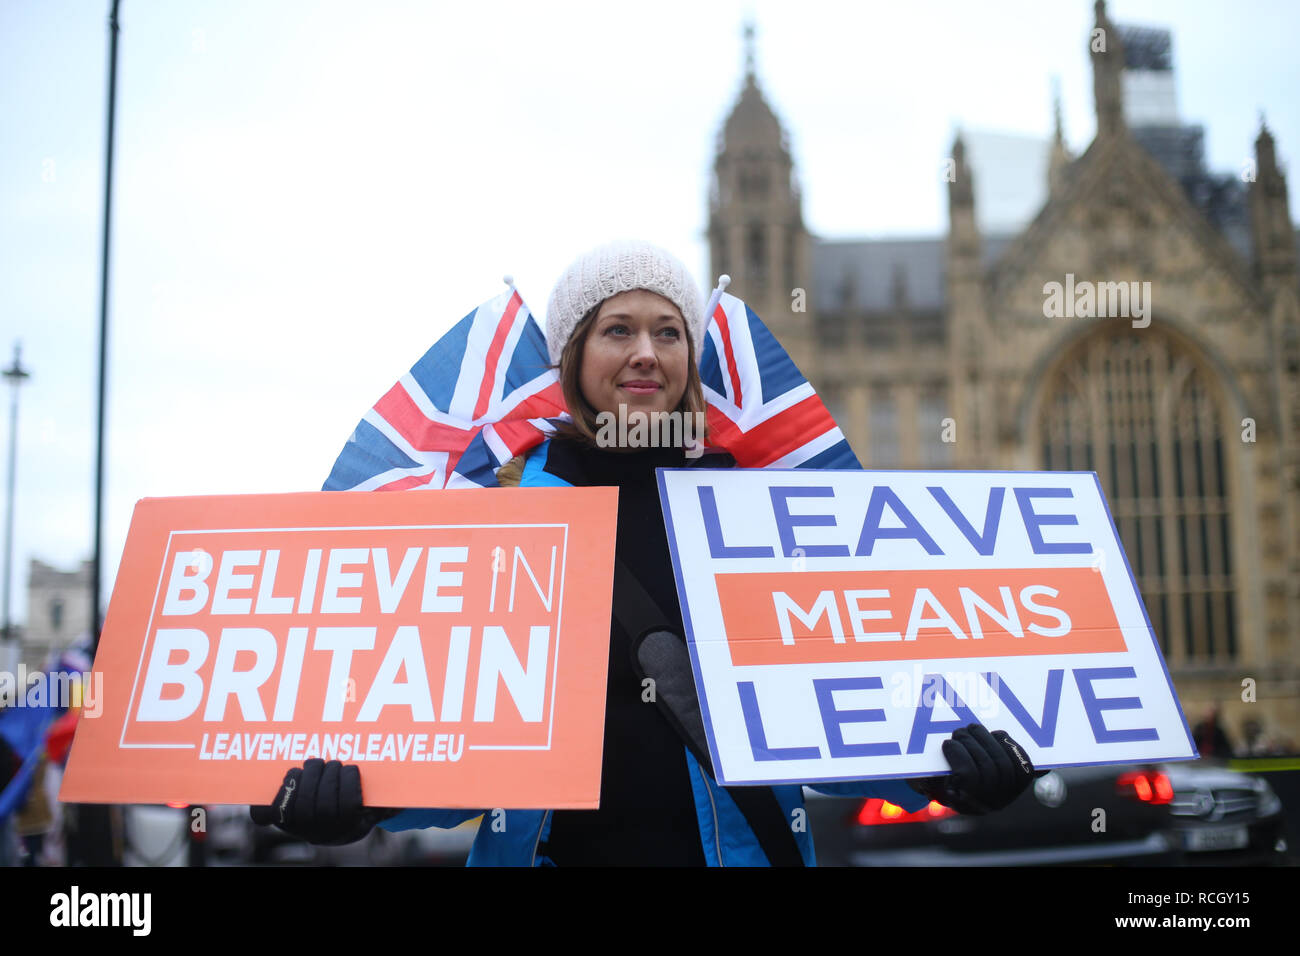 A Brexiteer outside the Houses of Parliament, London, ahead of the House of Commons vote on the Prime Minister's Brexit deal. - Stock Image